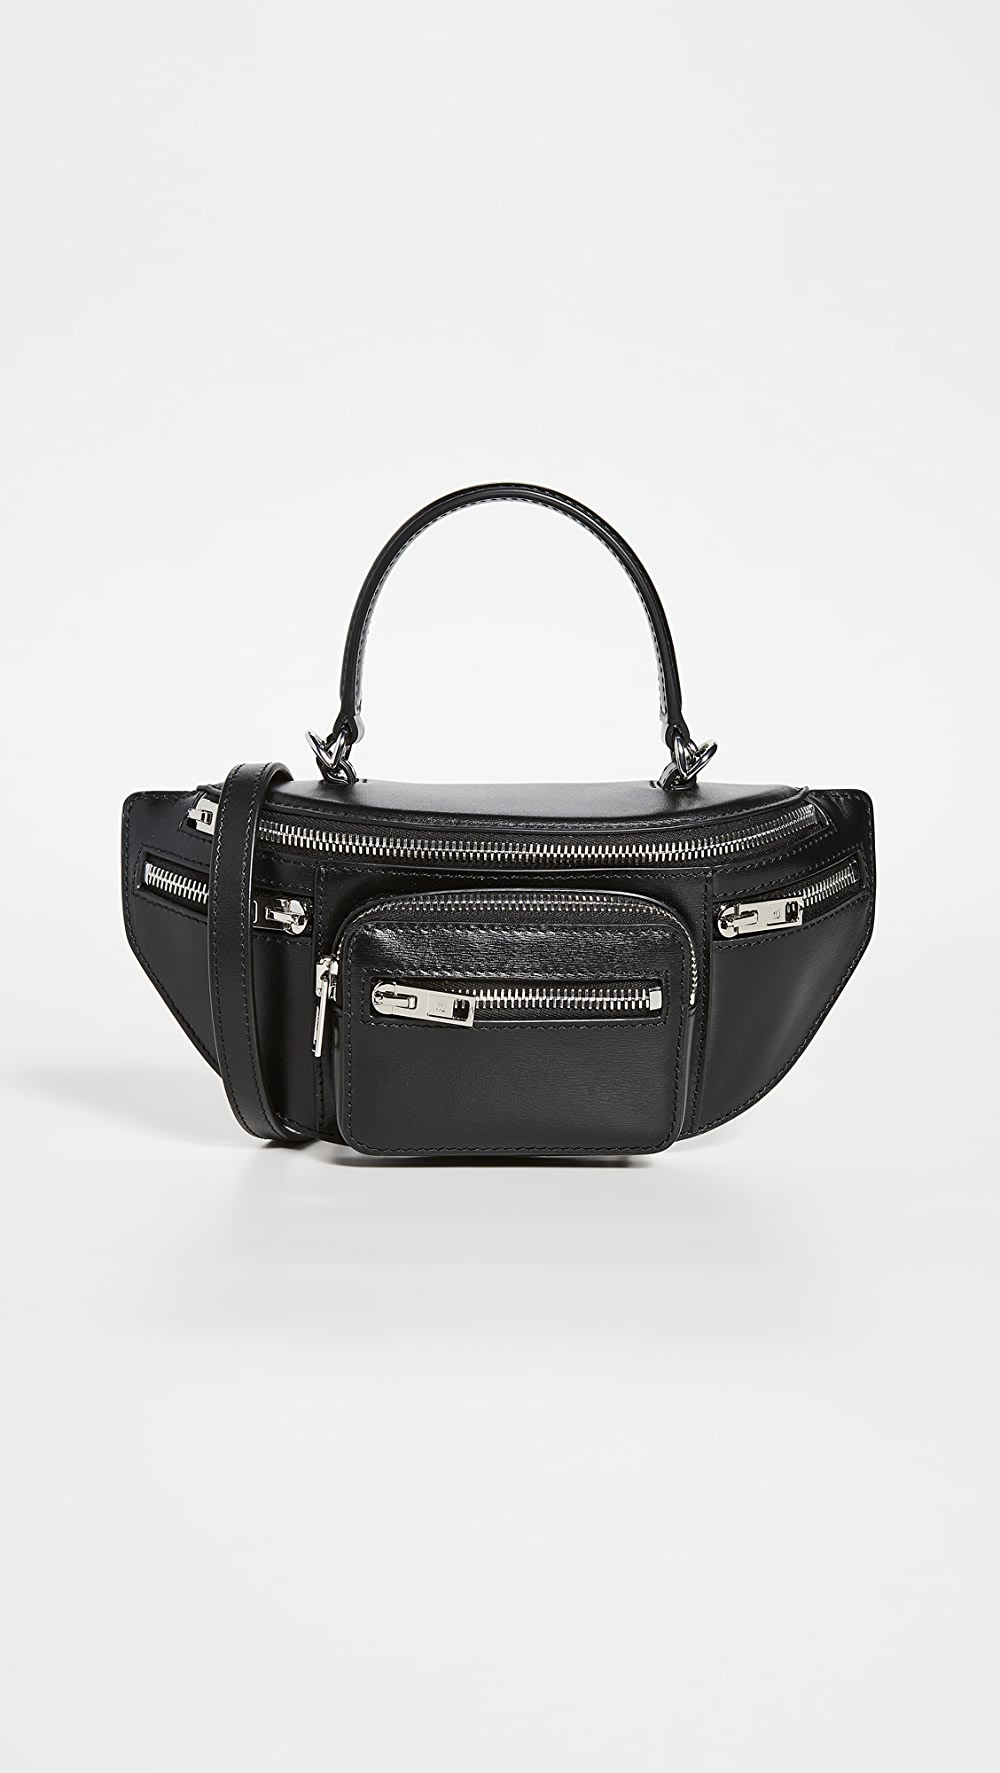 Alert Alexander Wang - Attica Soft Mini Top Handle Bag 100% High Quality Materials